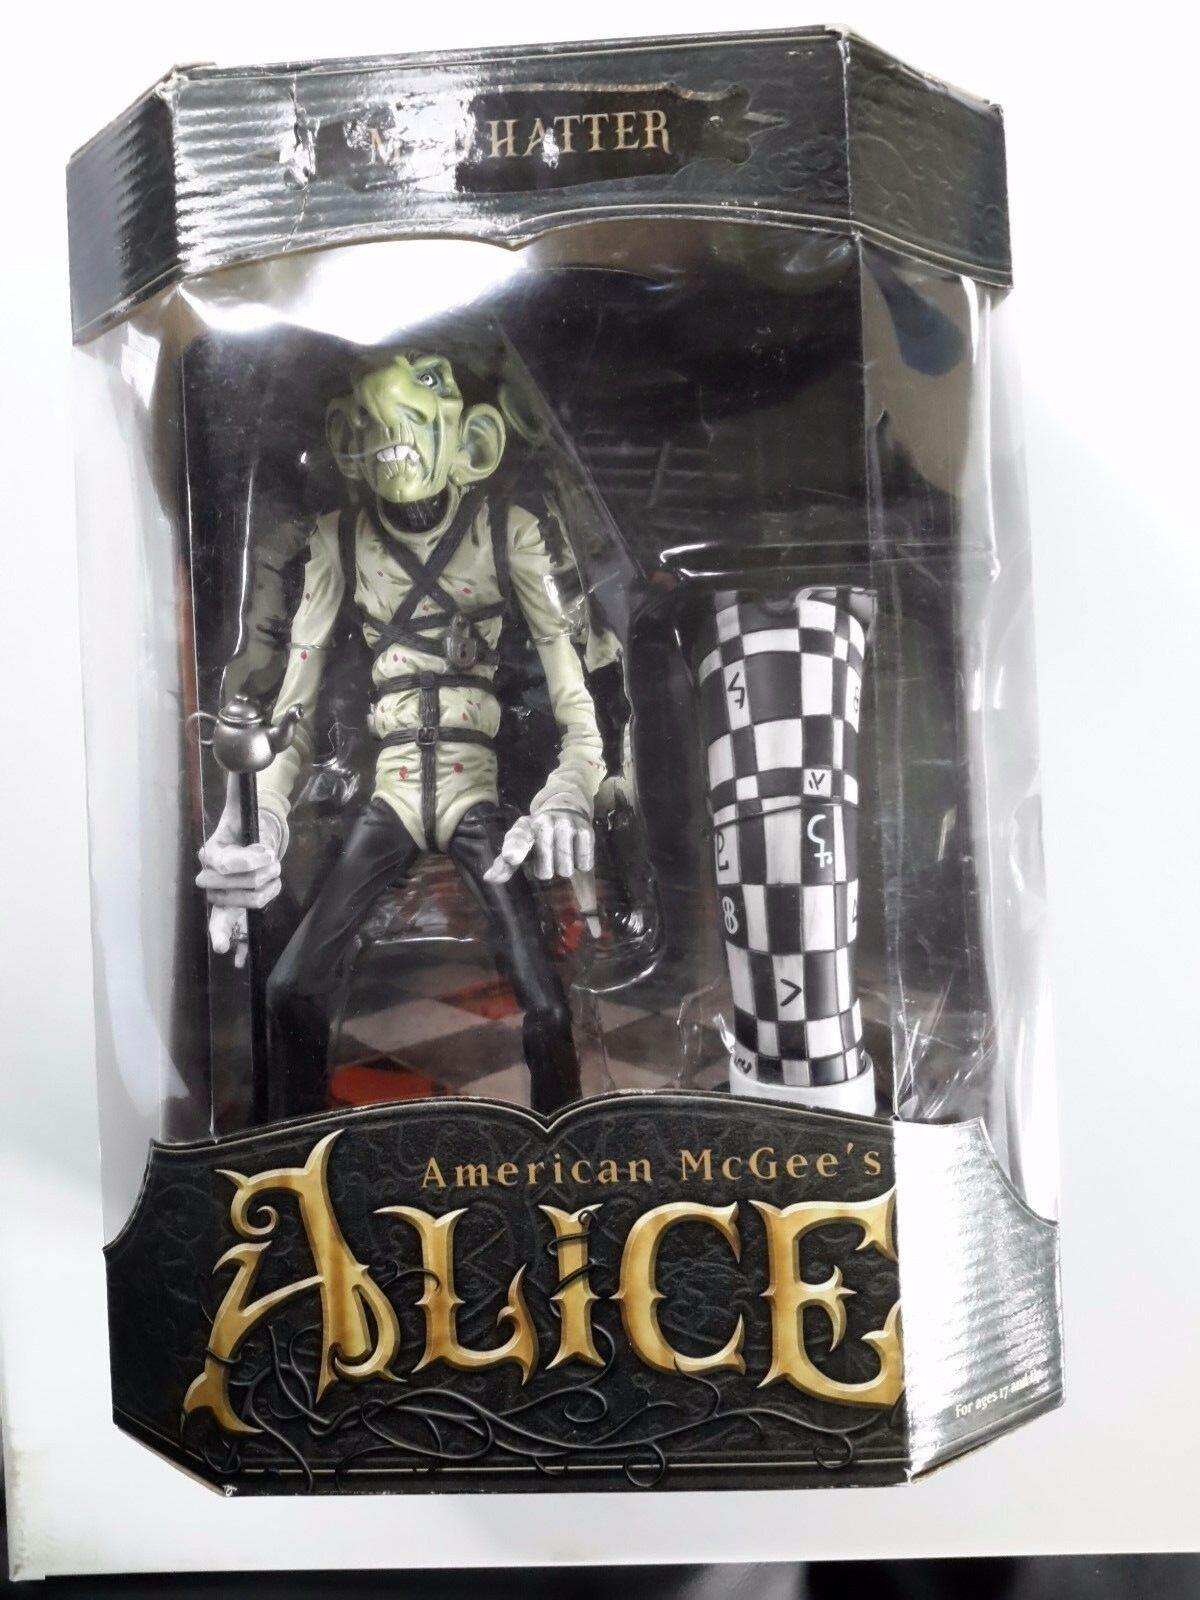 MAD HATTER SERIES ONE AMERICAN MCGEE'S MCGEE'S MCGEE'S ALICE ACTION FIGURE MINT IN BOX MIB NRFB 1c3c9f